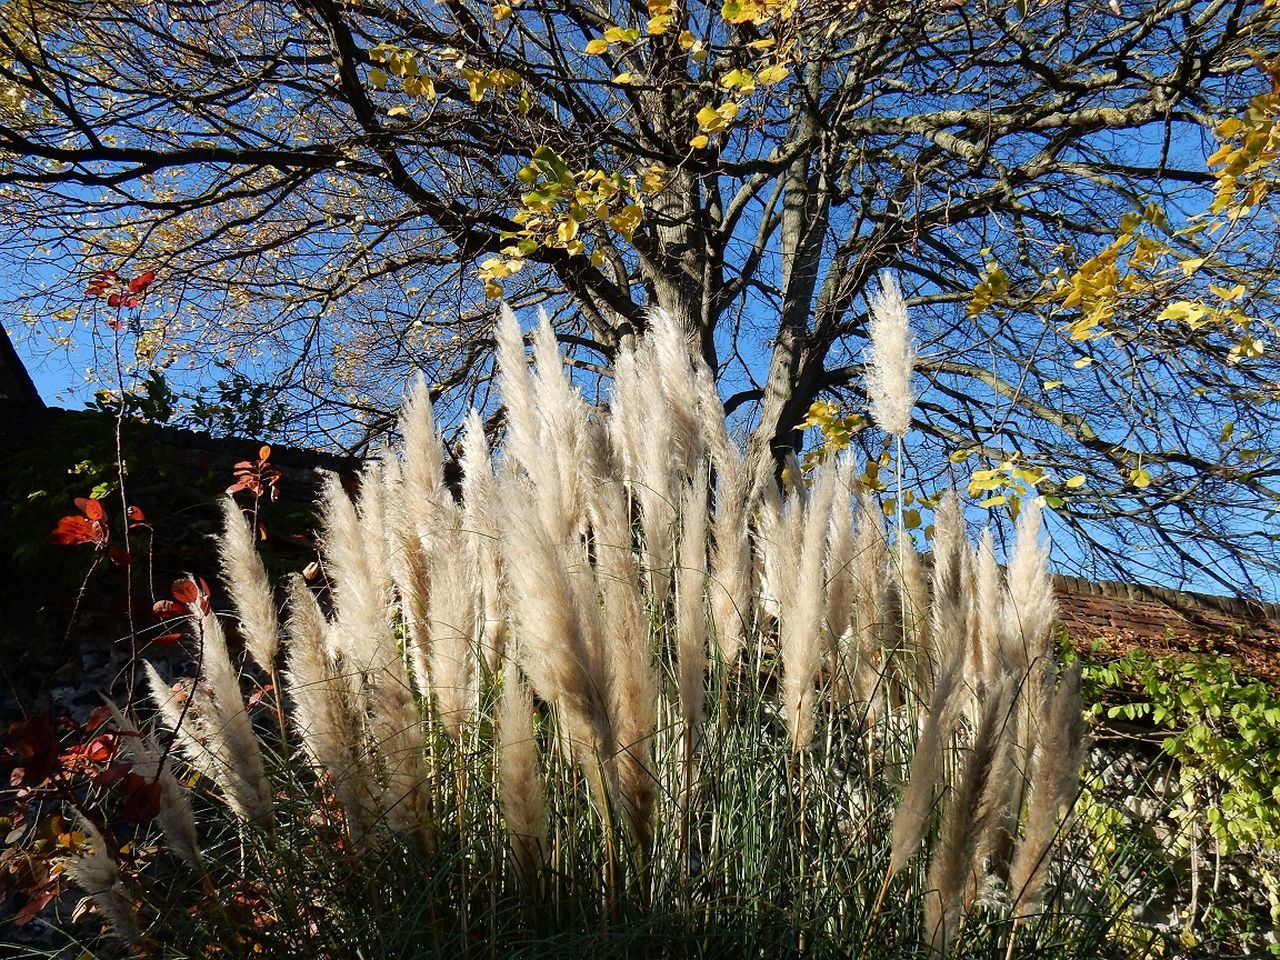 tree, branch, nature, growth, flower, beauty in nature, outdoors, day, no people, bare tree, autumn, clear sky, grass, sky